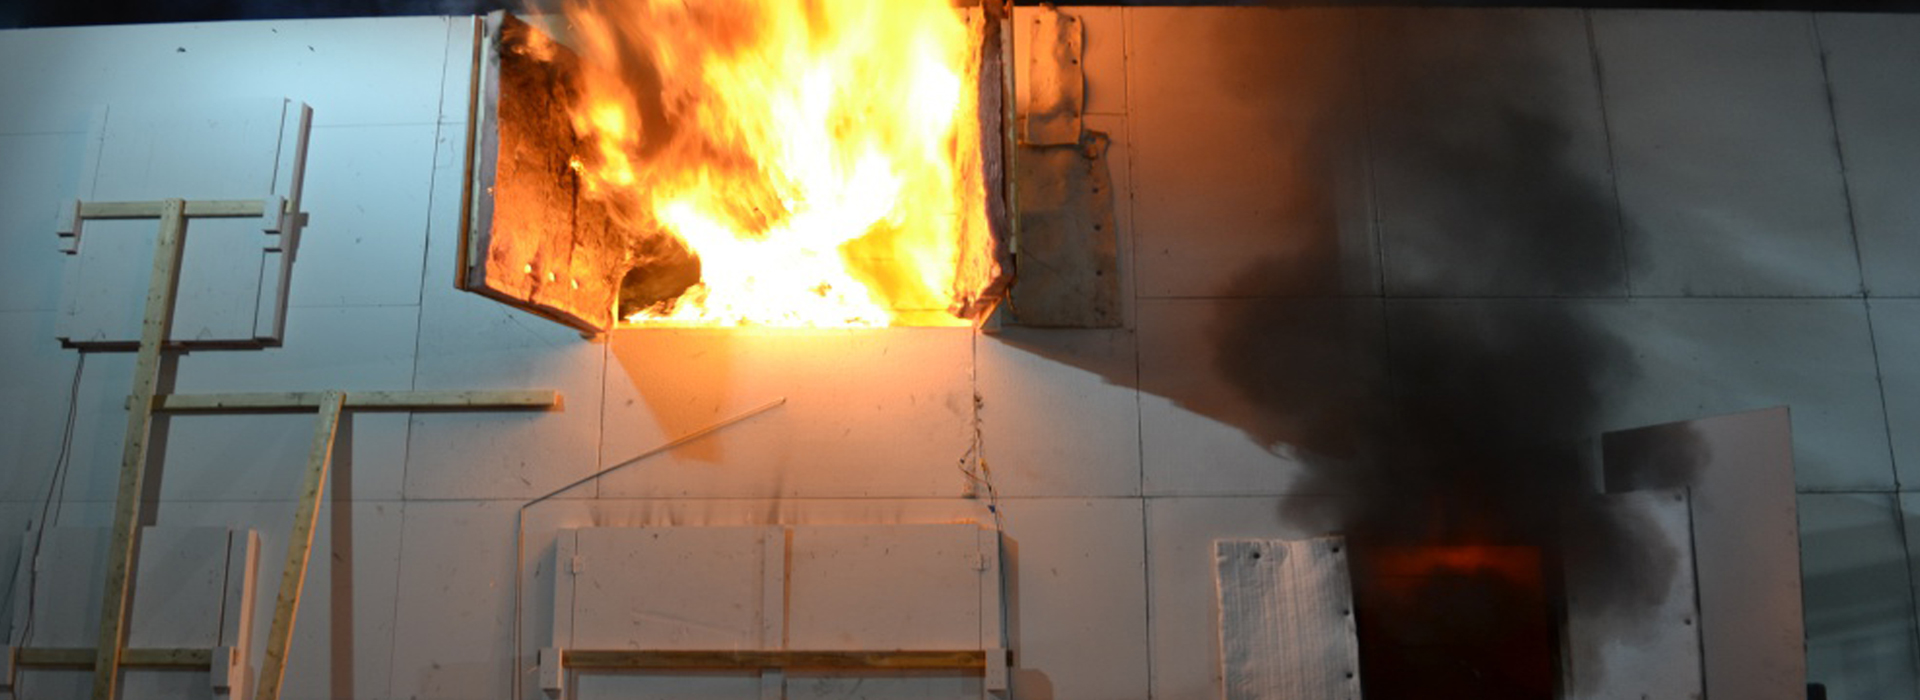 Ventilation Limited Fires - Considerations for Fire Pattern Analysis